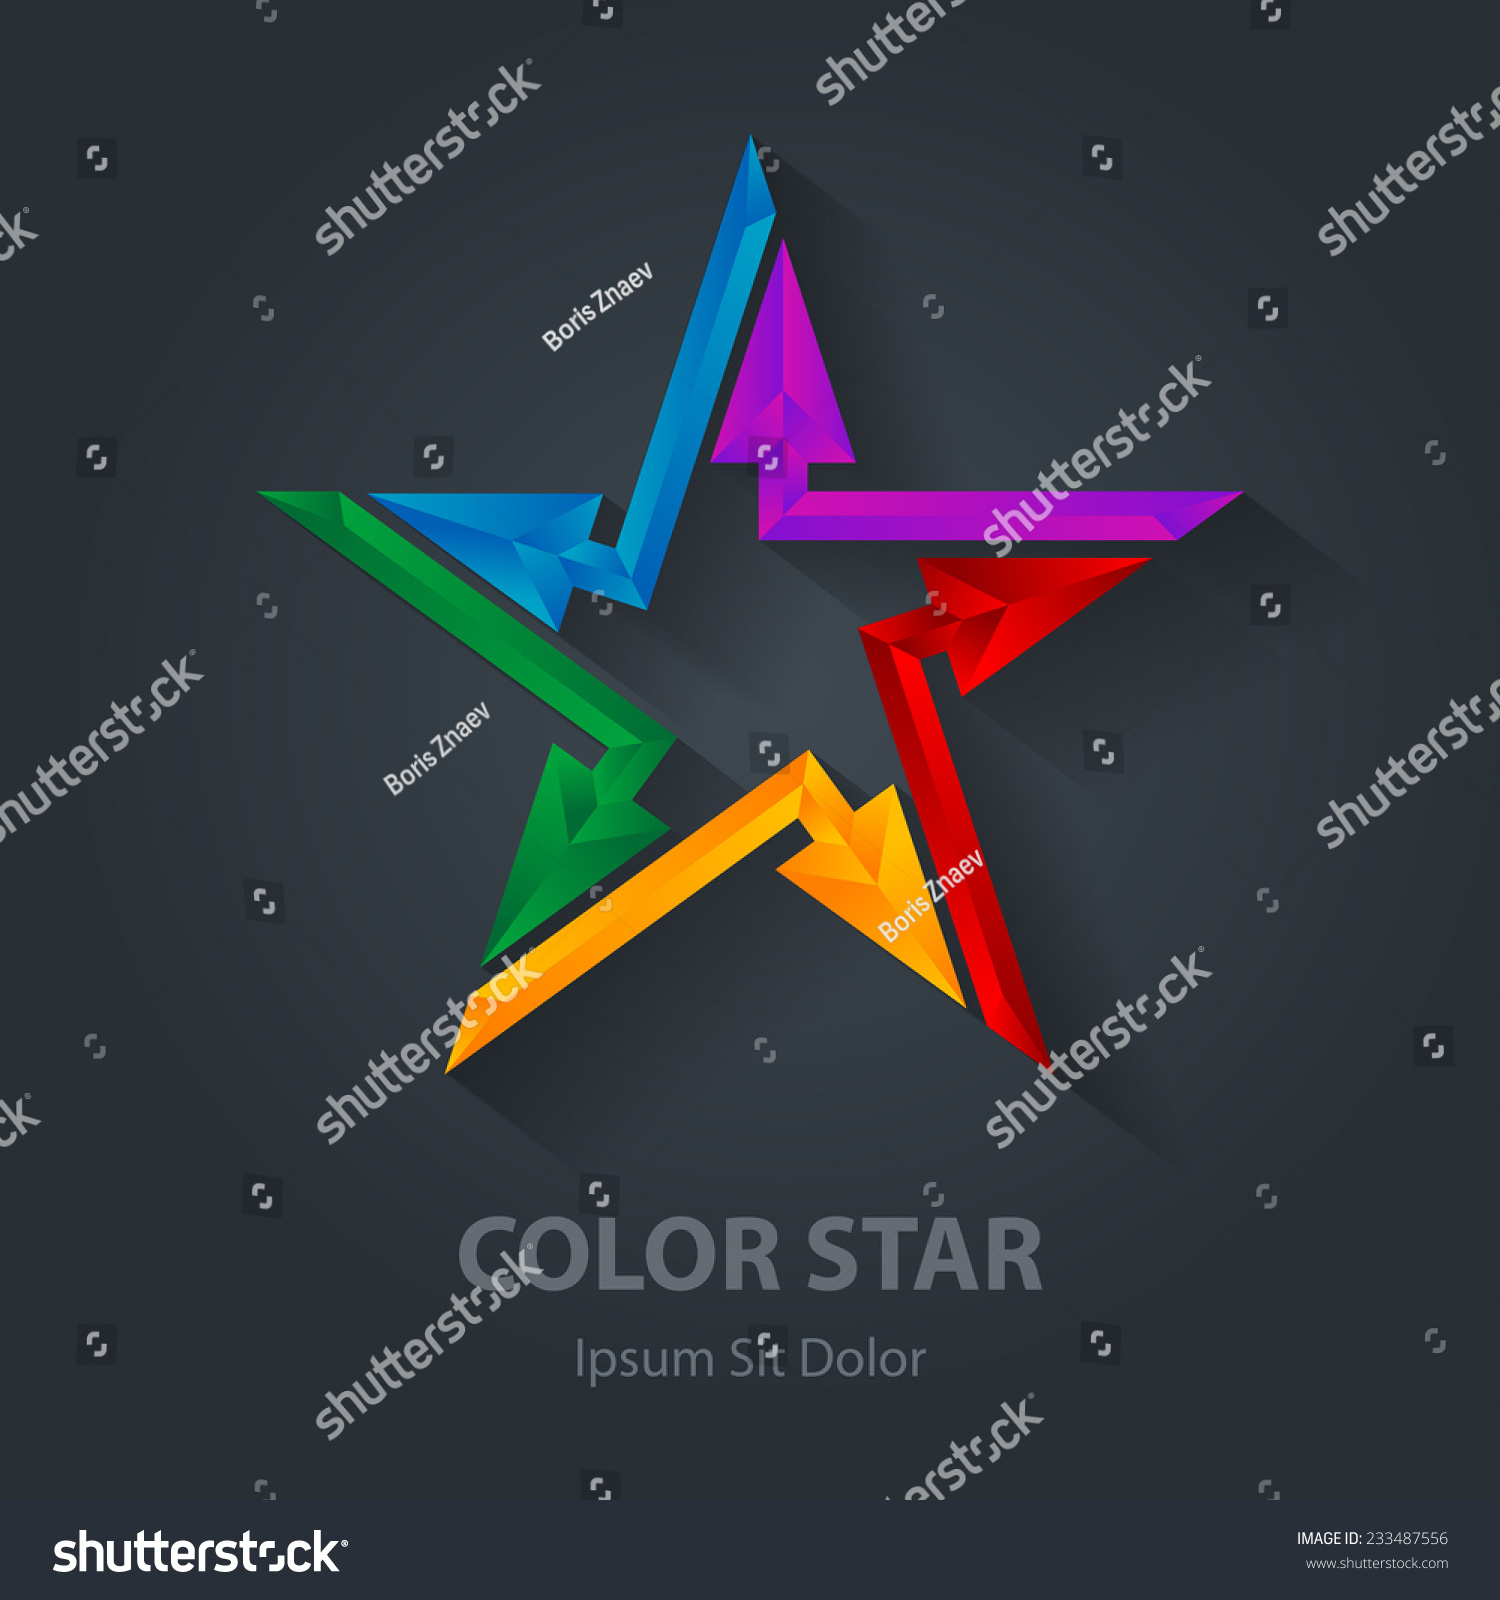 Great 10 Best Resume Templates Thin 12 Month Calendar Template Solid 1920s Newspaper Template 2 Page Resume Sample Young 2010 Calendar Template Fresh2014 Diary Template Colorful 3d Star Logo Arrows Starshaped Stock Vector 233487556 ..